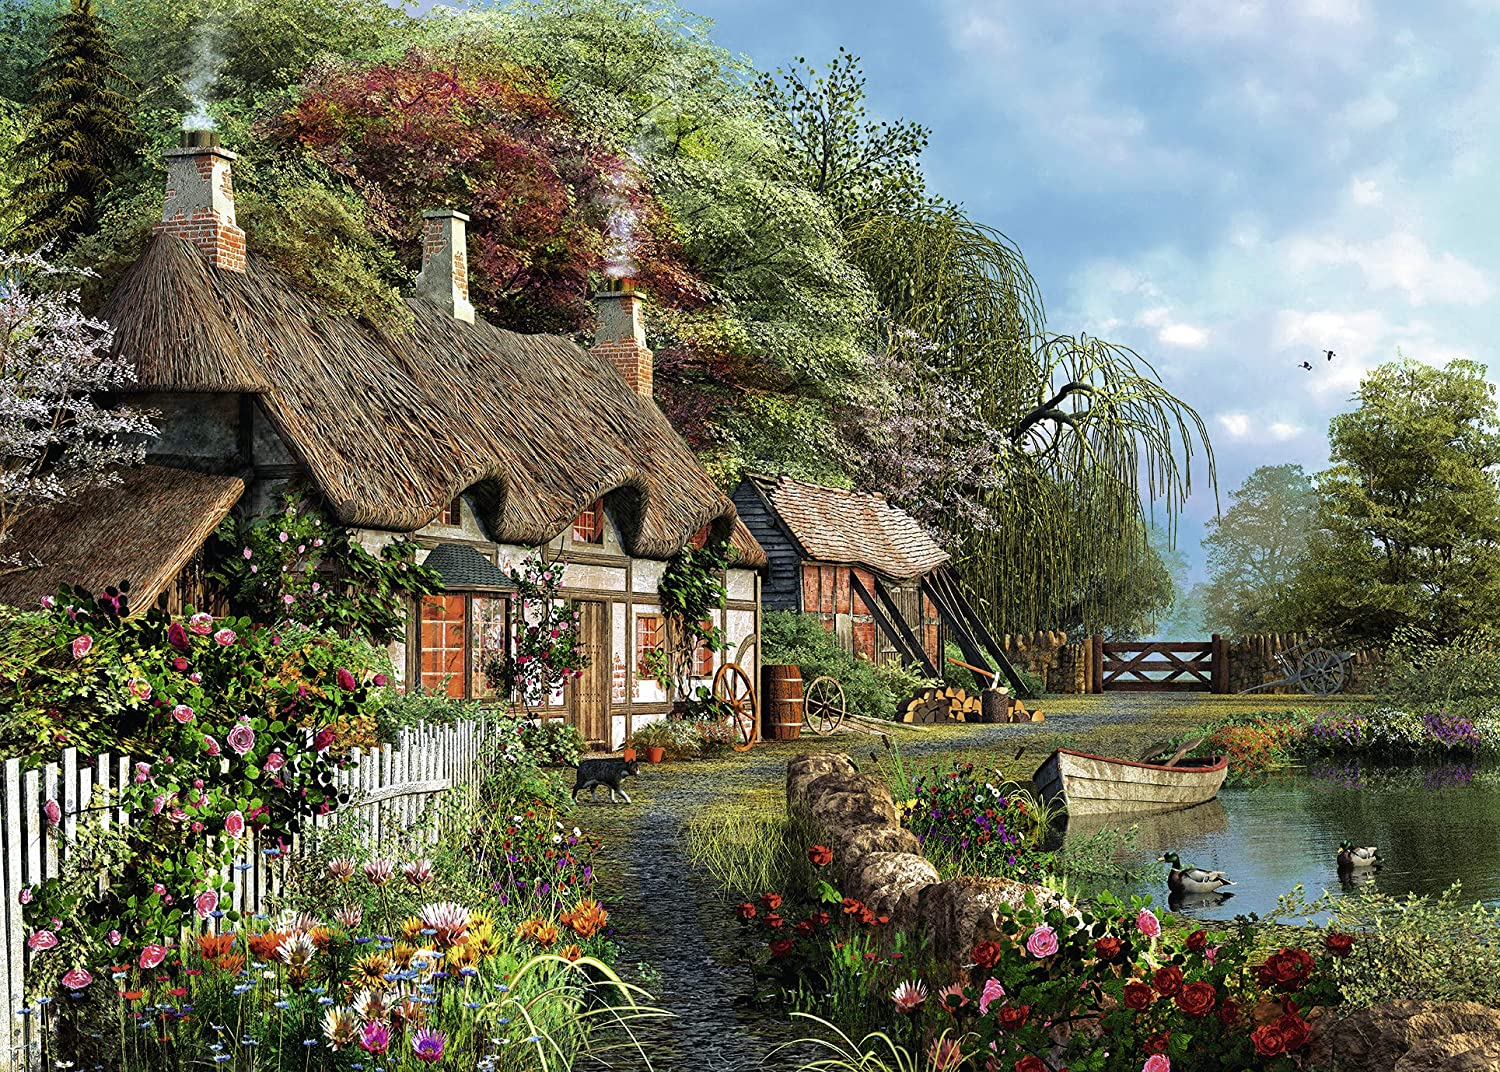 Ravensburger Cottage On A Lake Large Format 300 Piece Jigsaw Puzzle for Adults – Every Piece is Unique, Softclick Technology Means Pieces Fit Together Perfectly